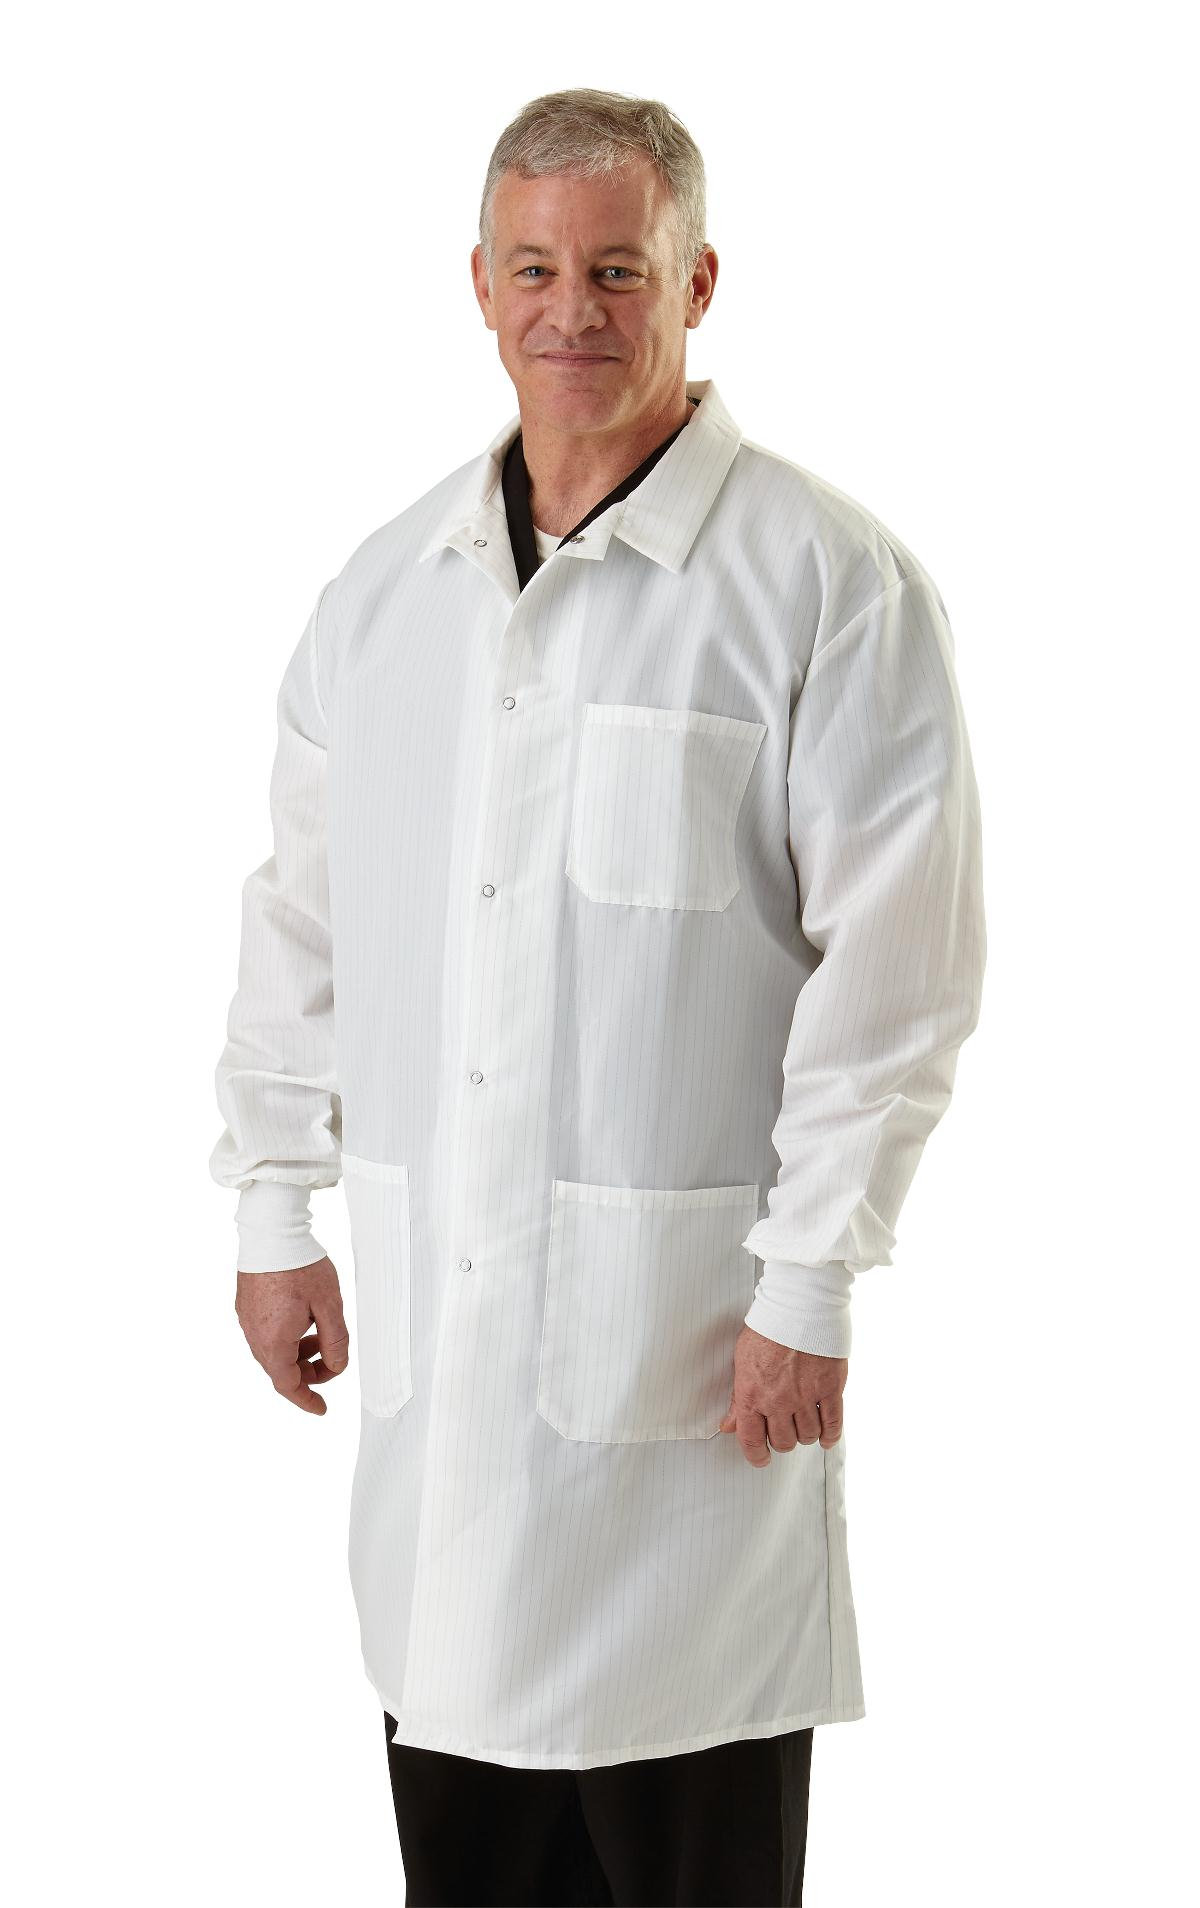 Unisex Barrier Lab Coat- Snap Closure - White